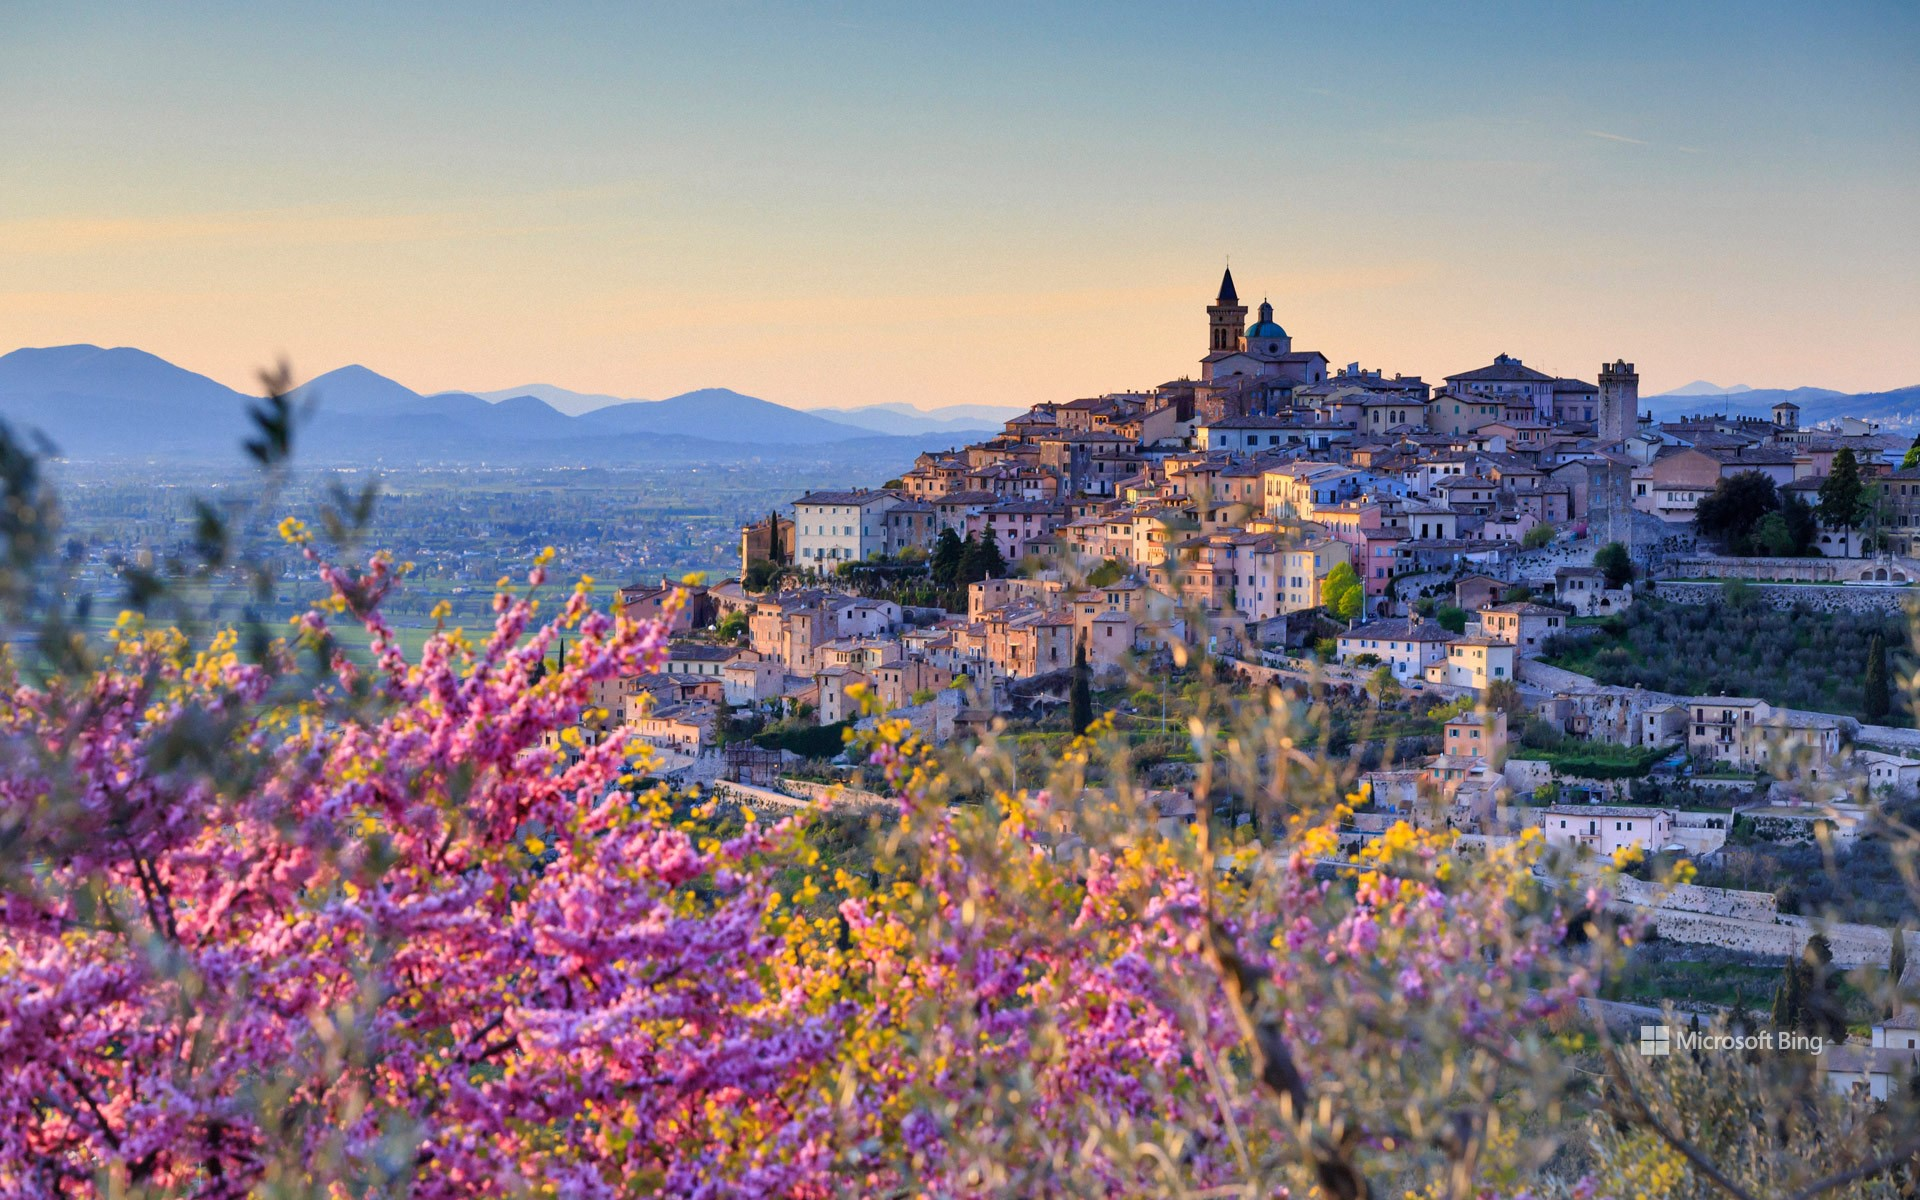 Trevi, Umbria, Italy, with almond flowers in the foreground